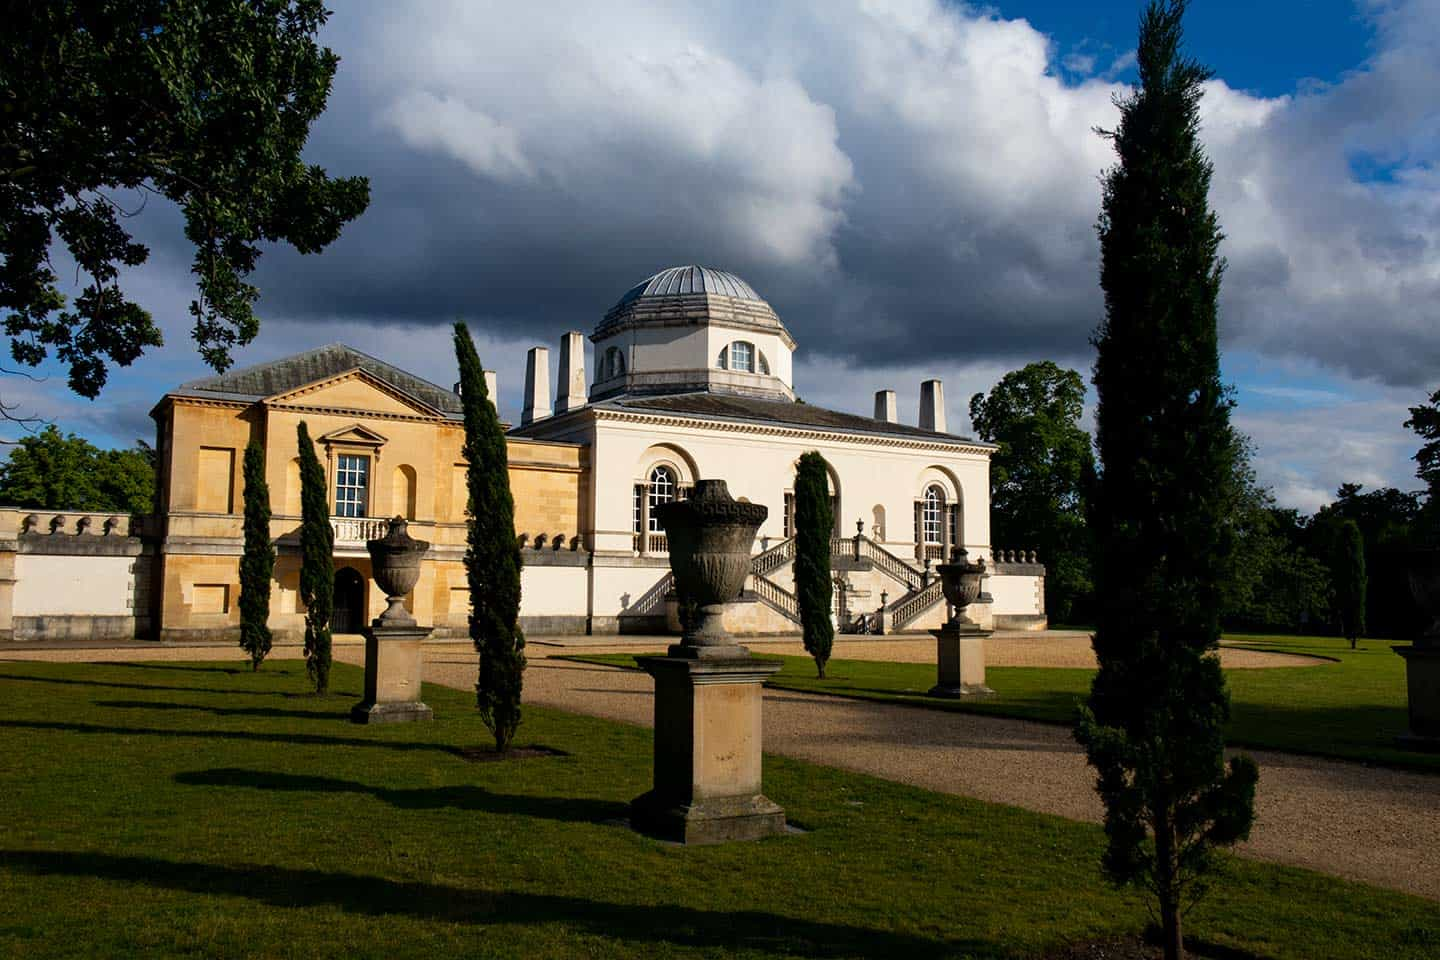 Image of Chiswick House in West London